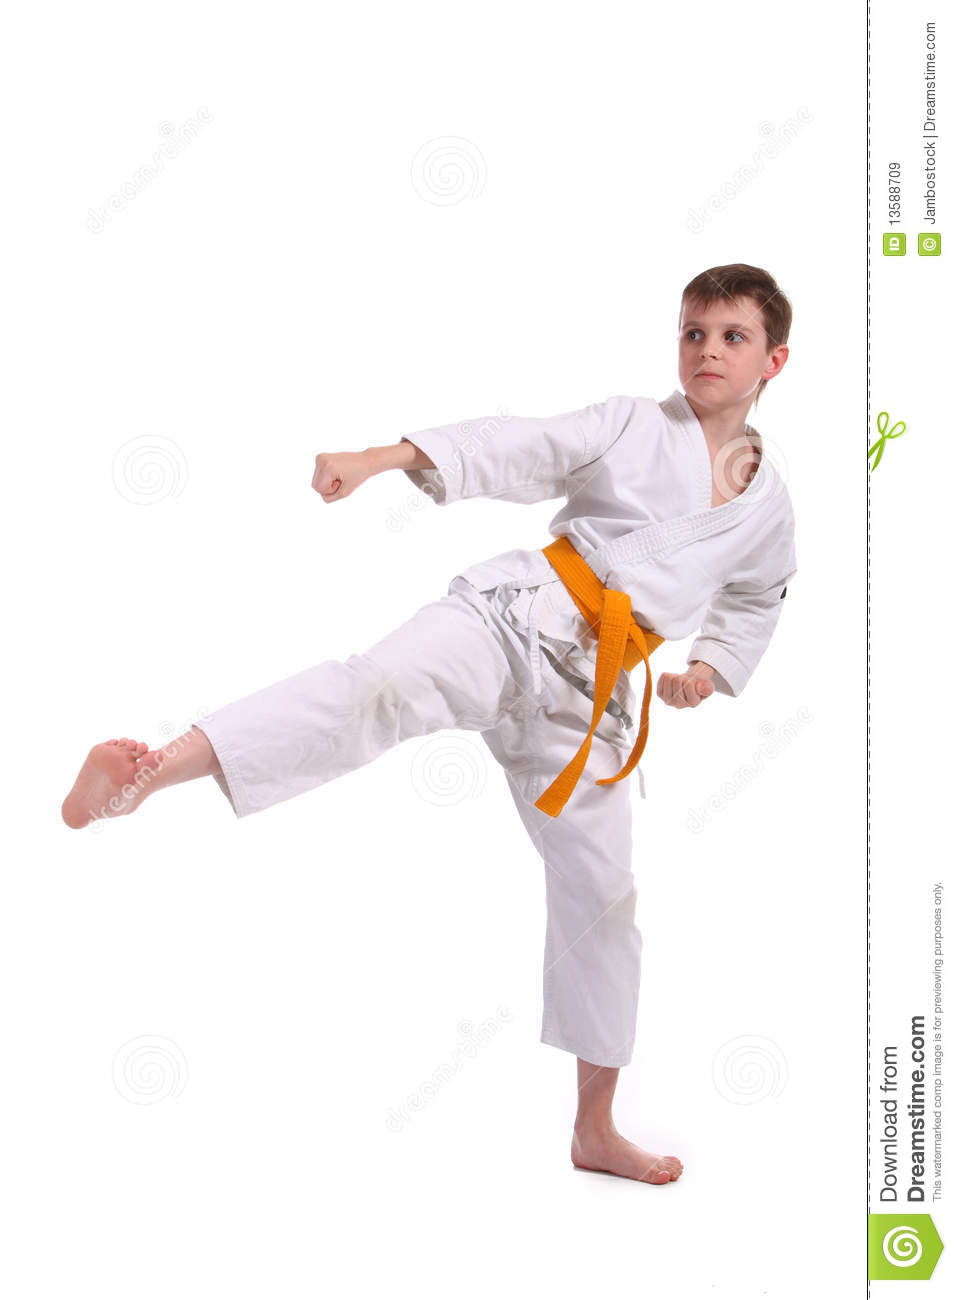 martial arts a child's best defense thesis statment